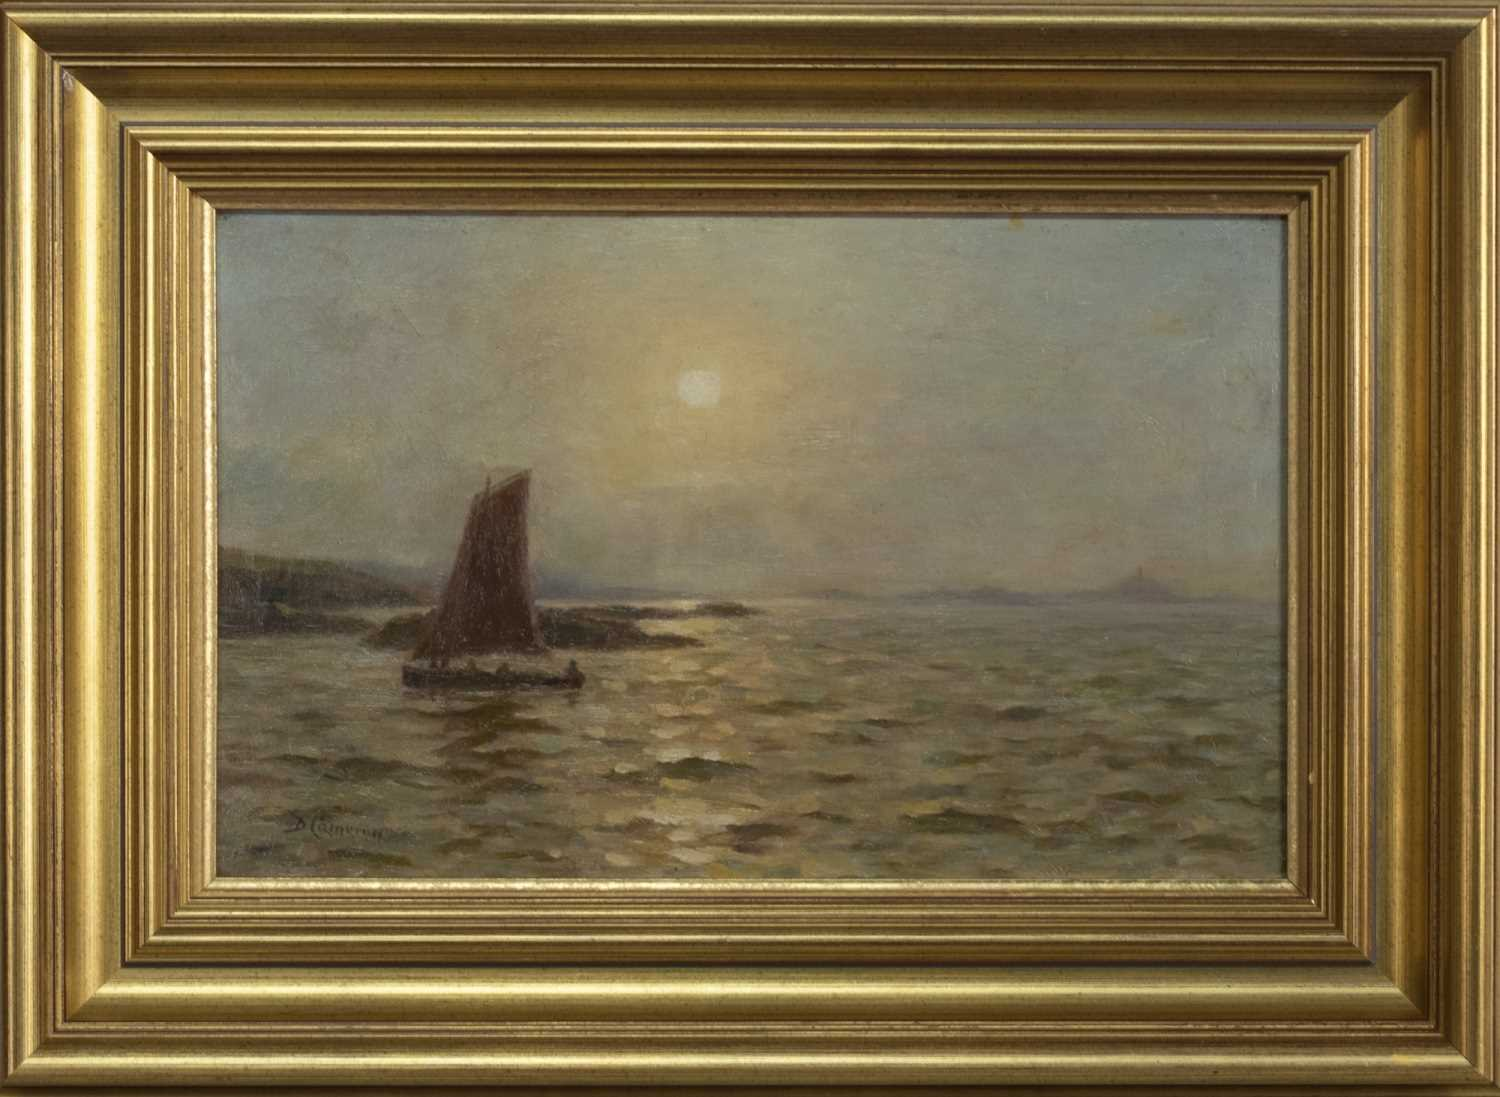 Lot 2035 - NORTH BERWICK, AN OIL BY DUNCAN CAMERON